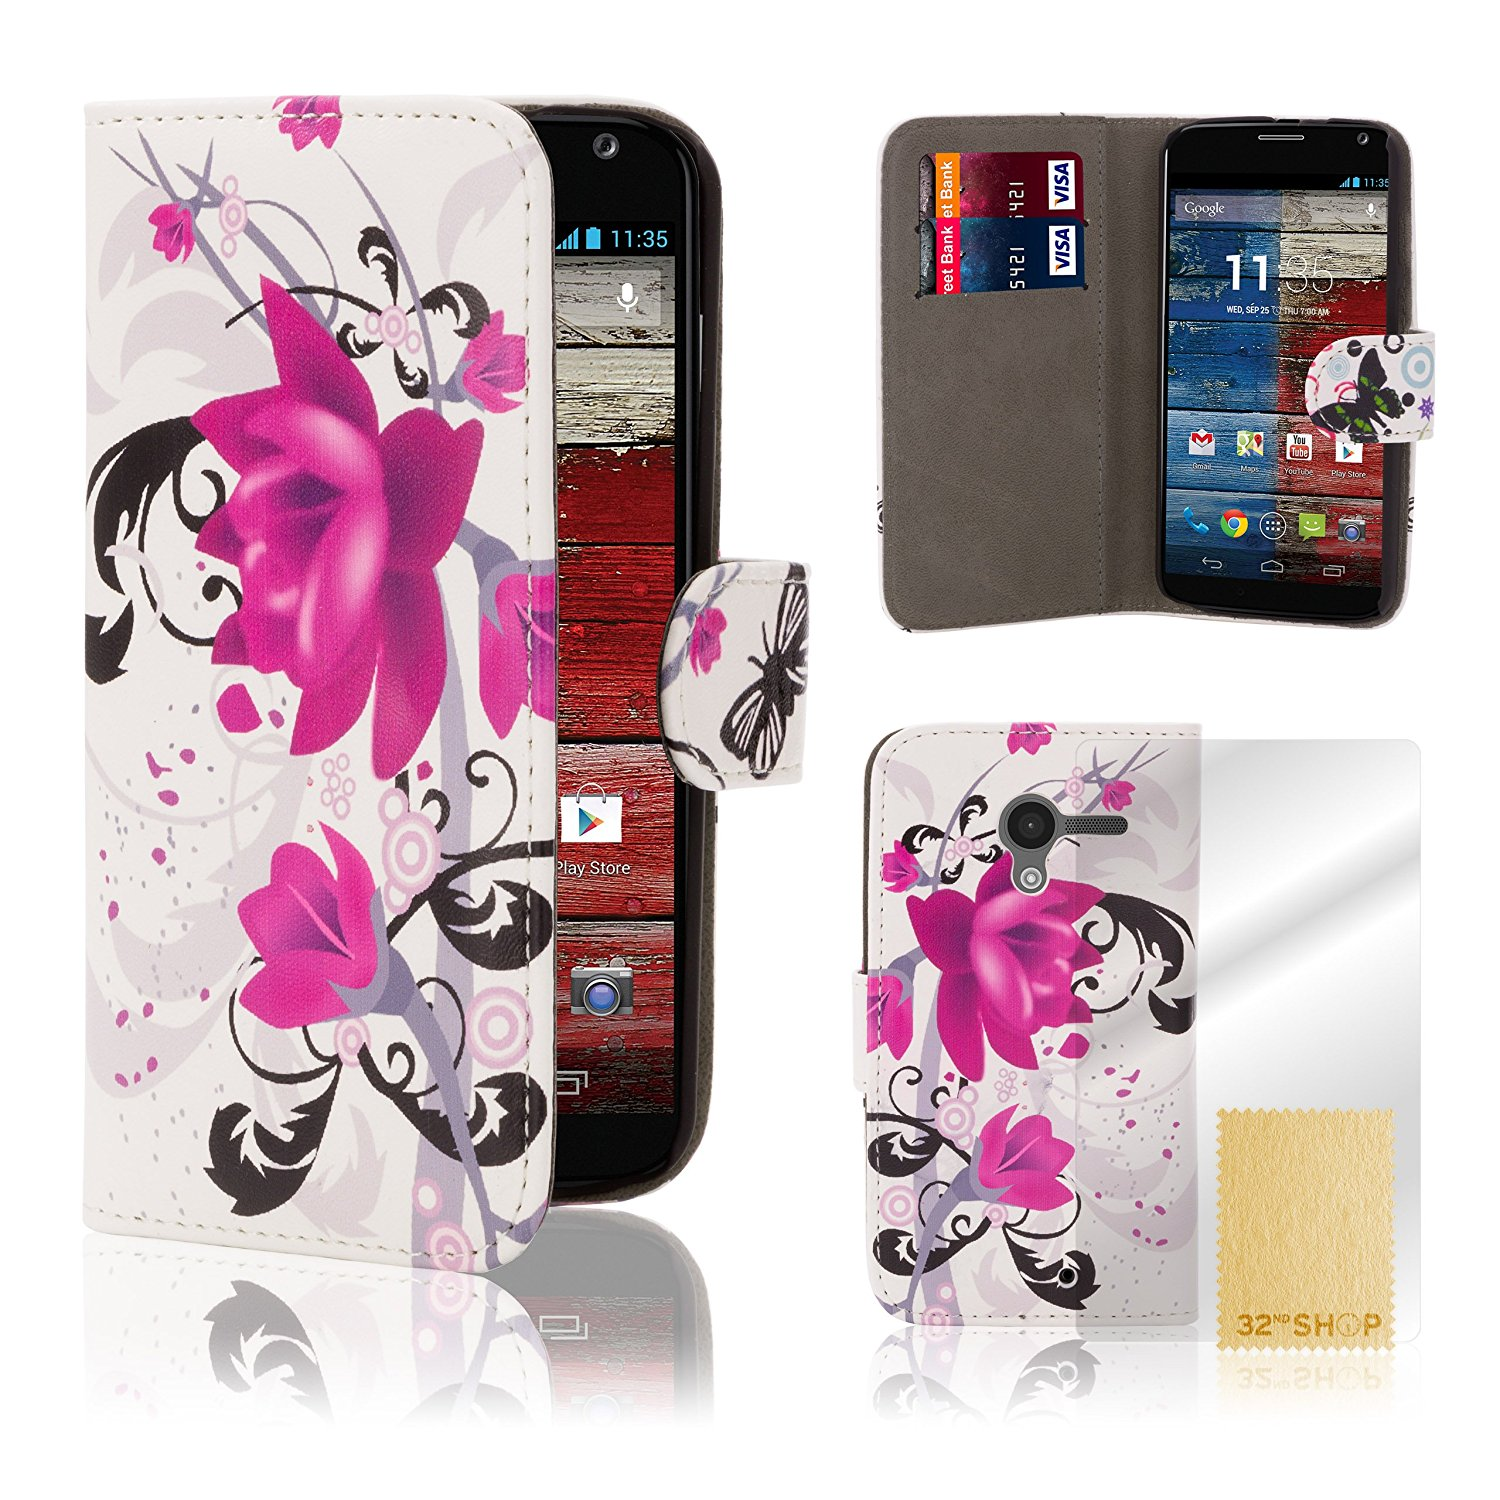 Motorola Moto X Designer Wallet Case by 32nd Premium PU Leather Book Style Design Cover for Motorola Moto X (2013), Including Film Screen Protector - Purple Rose